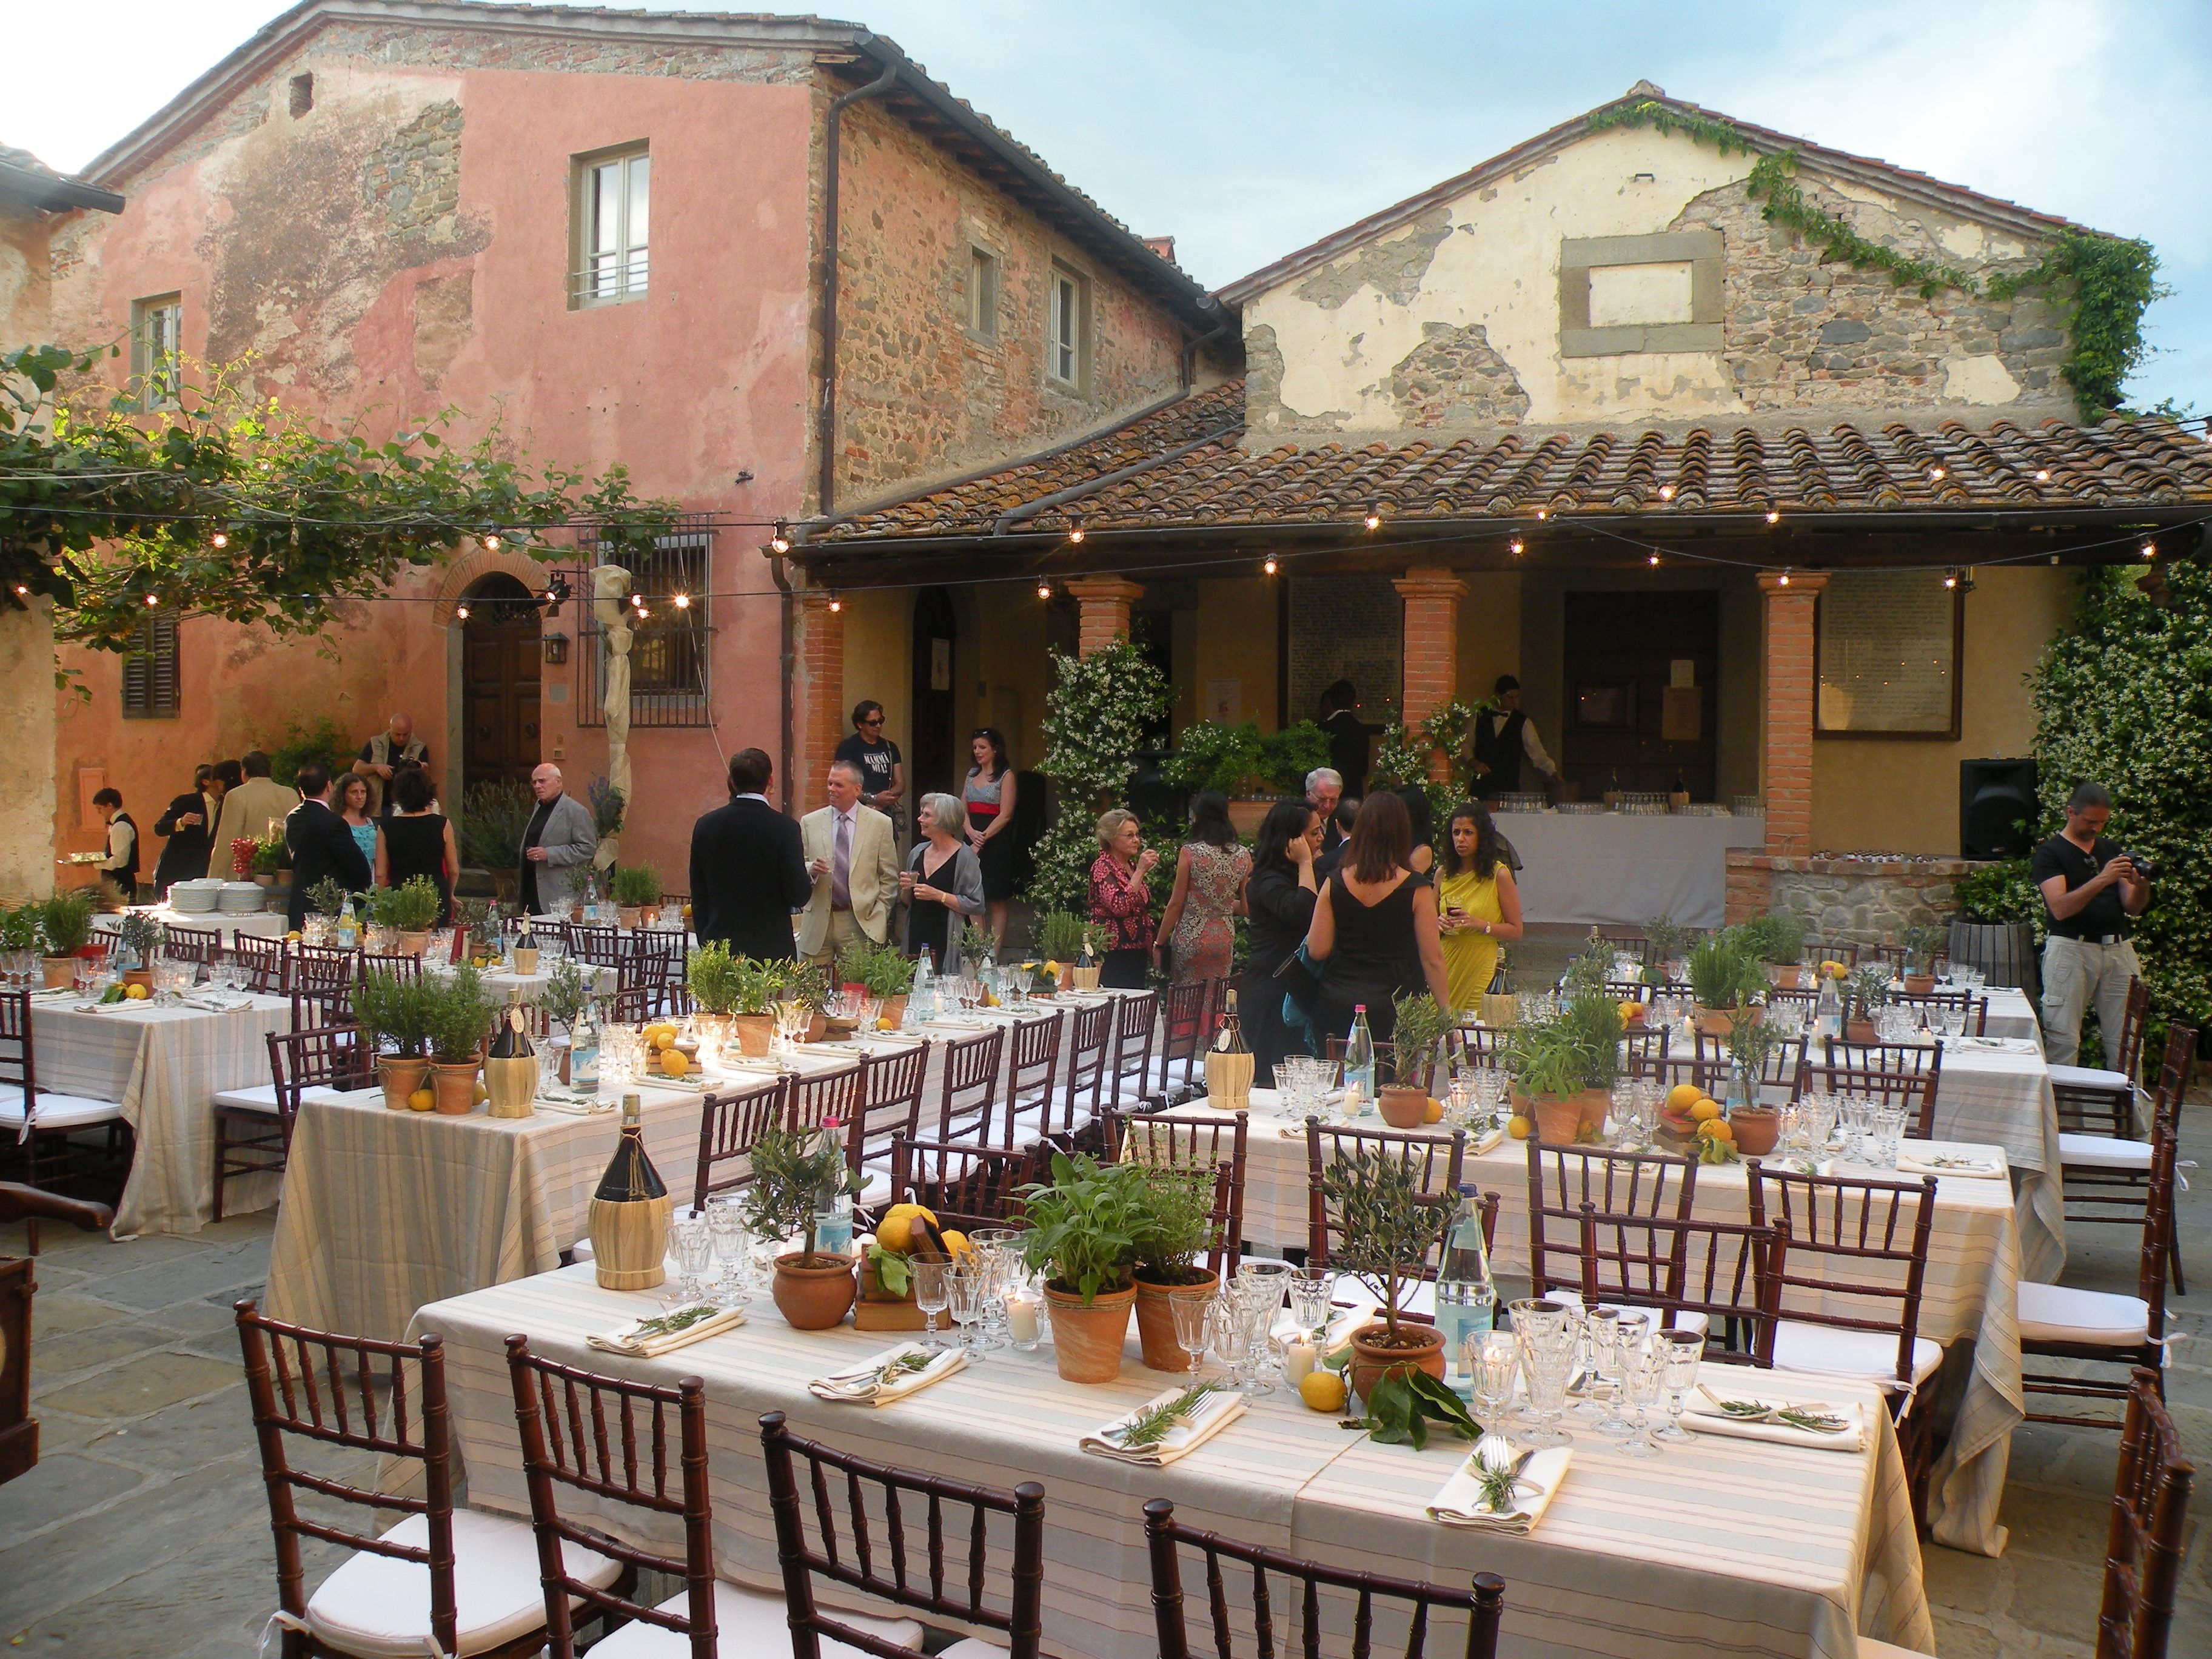 guests start arriving to the rehearsal dinner in the tuscan